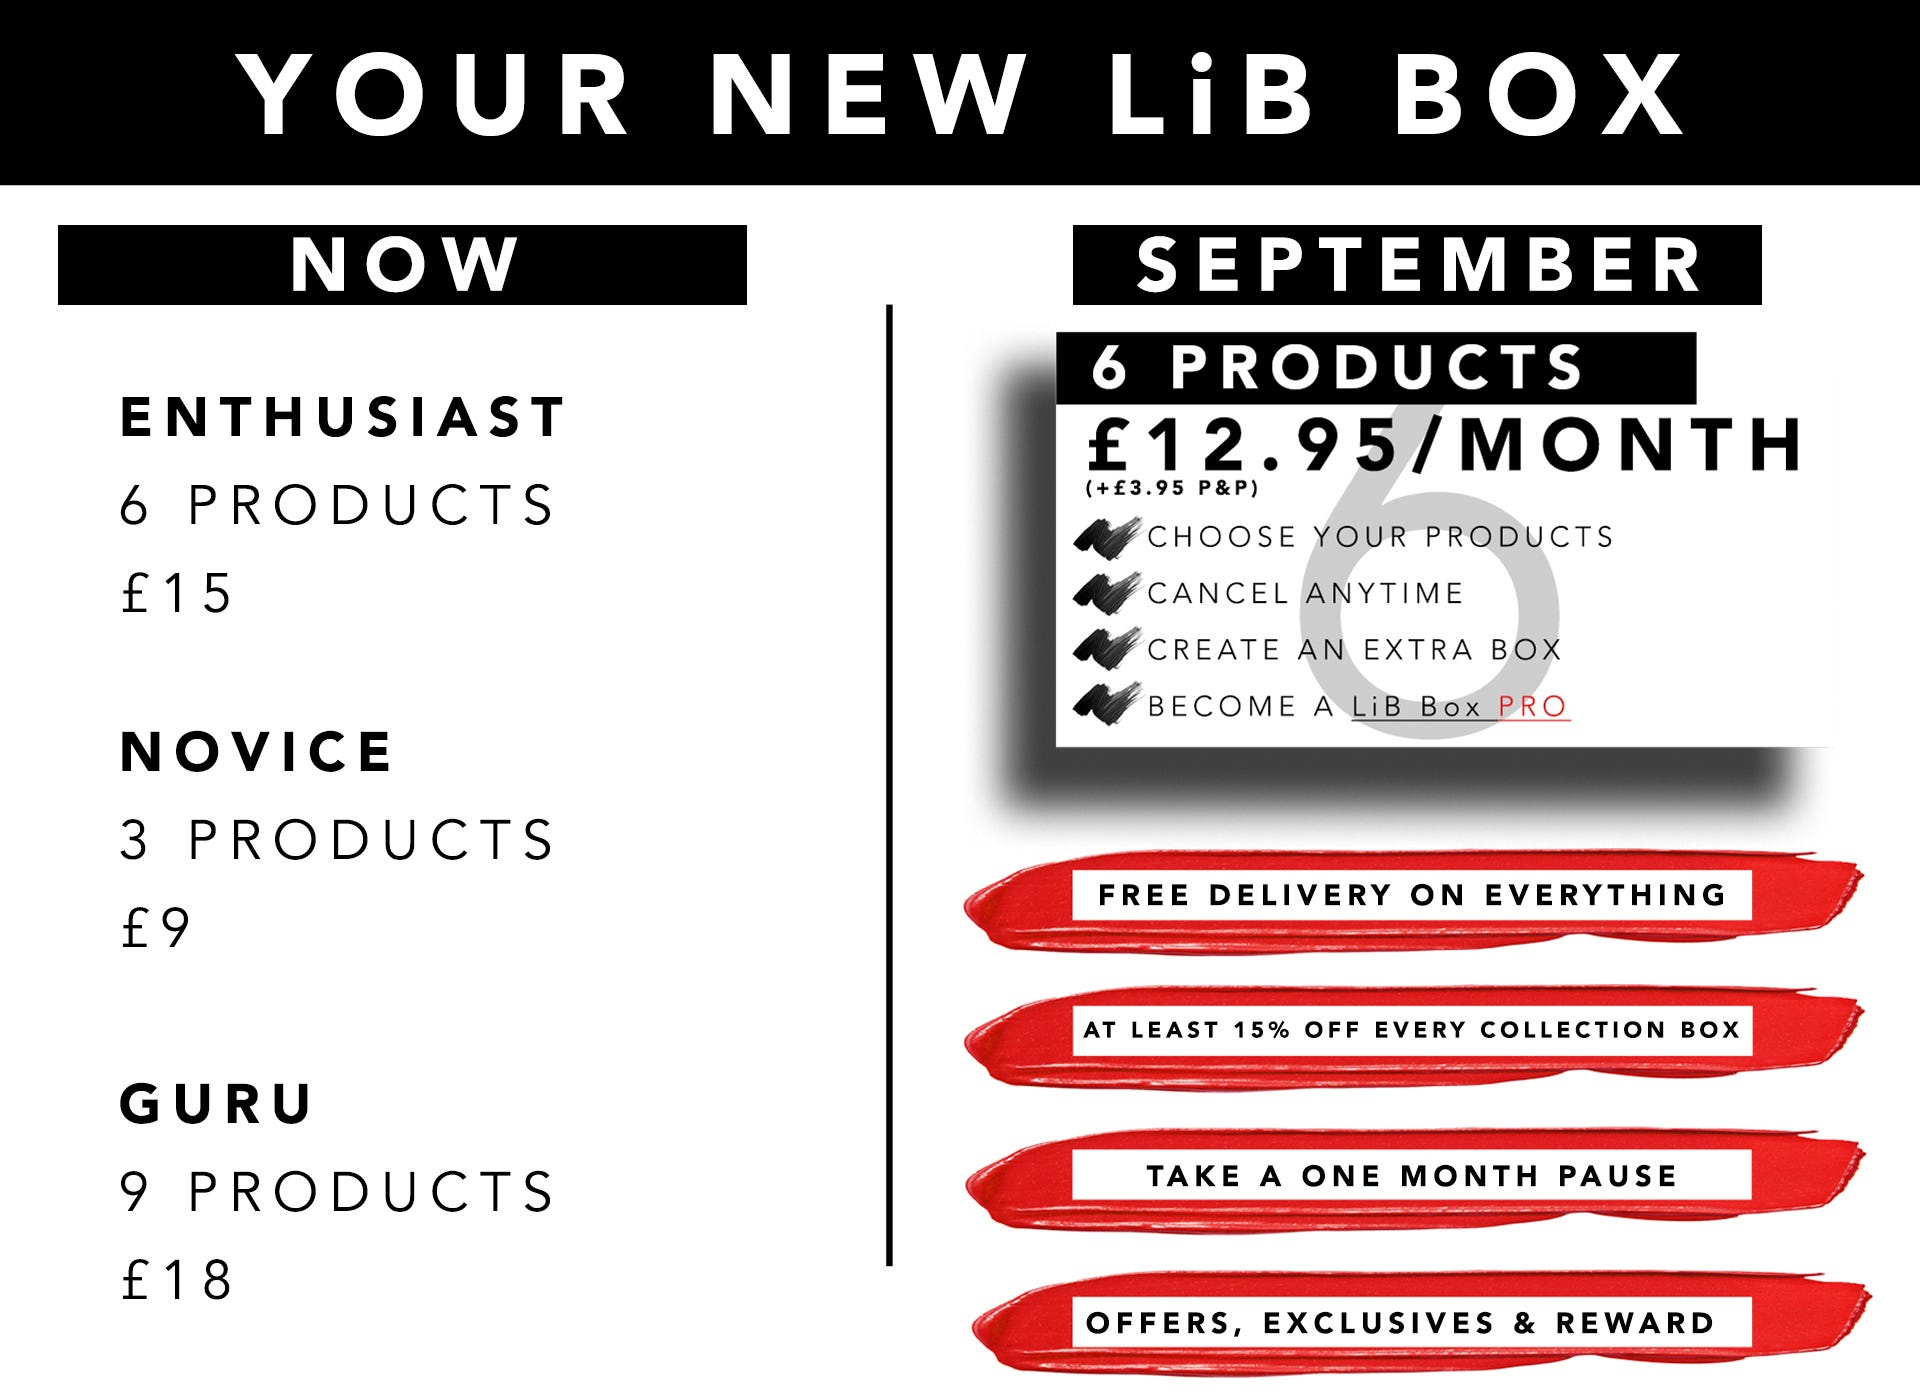 NEW-LIB-BOX-ANNOUNCEMENT-CHANGES1 (1)